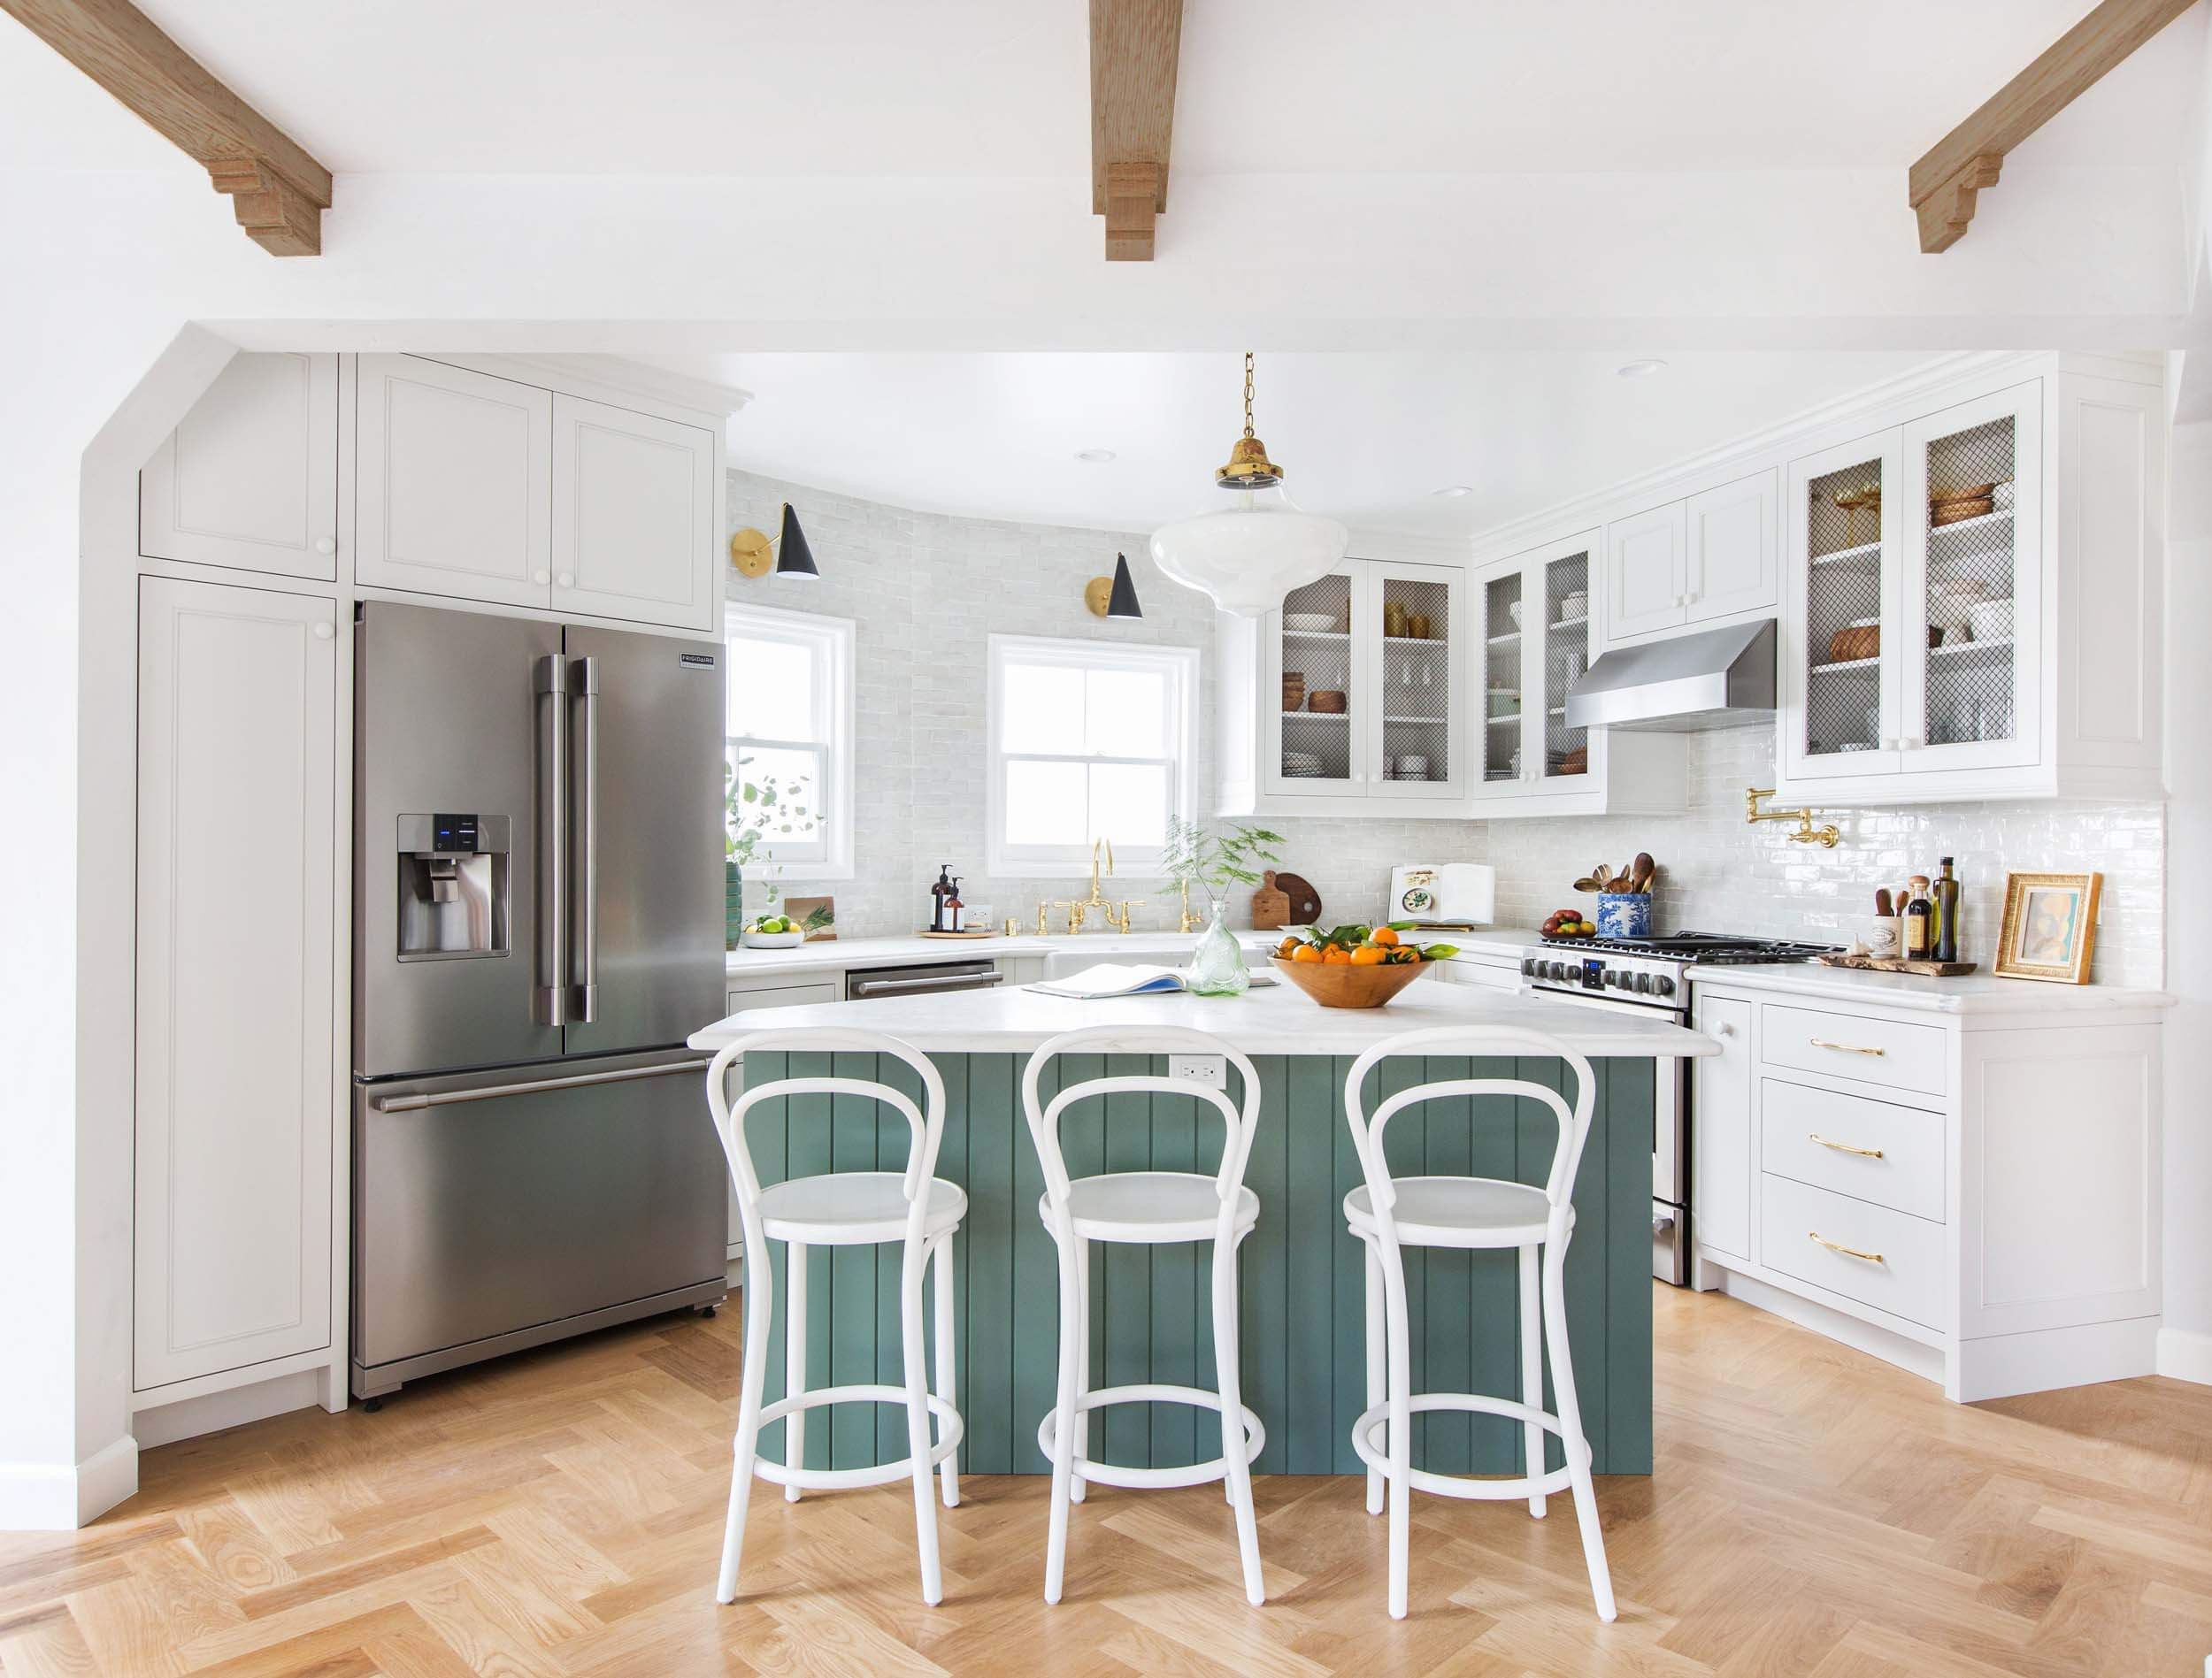 hardwood flooring with plugs of my kitchen design a year later lots to love some regrets emily in emily henderson frigidaire kitchen reveal waverly english modern edited beams 121